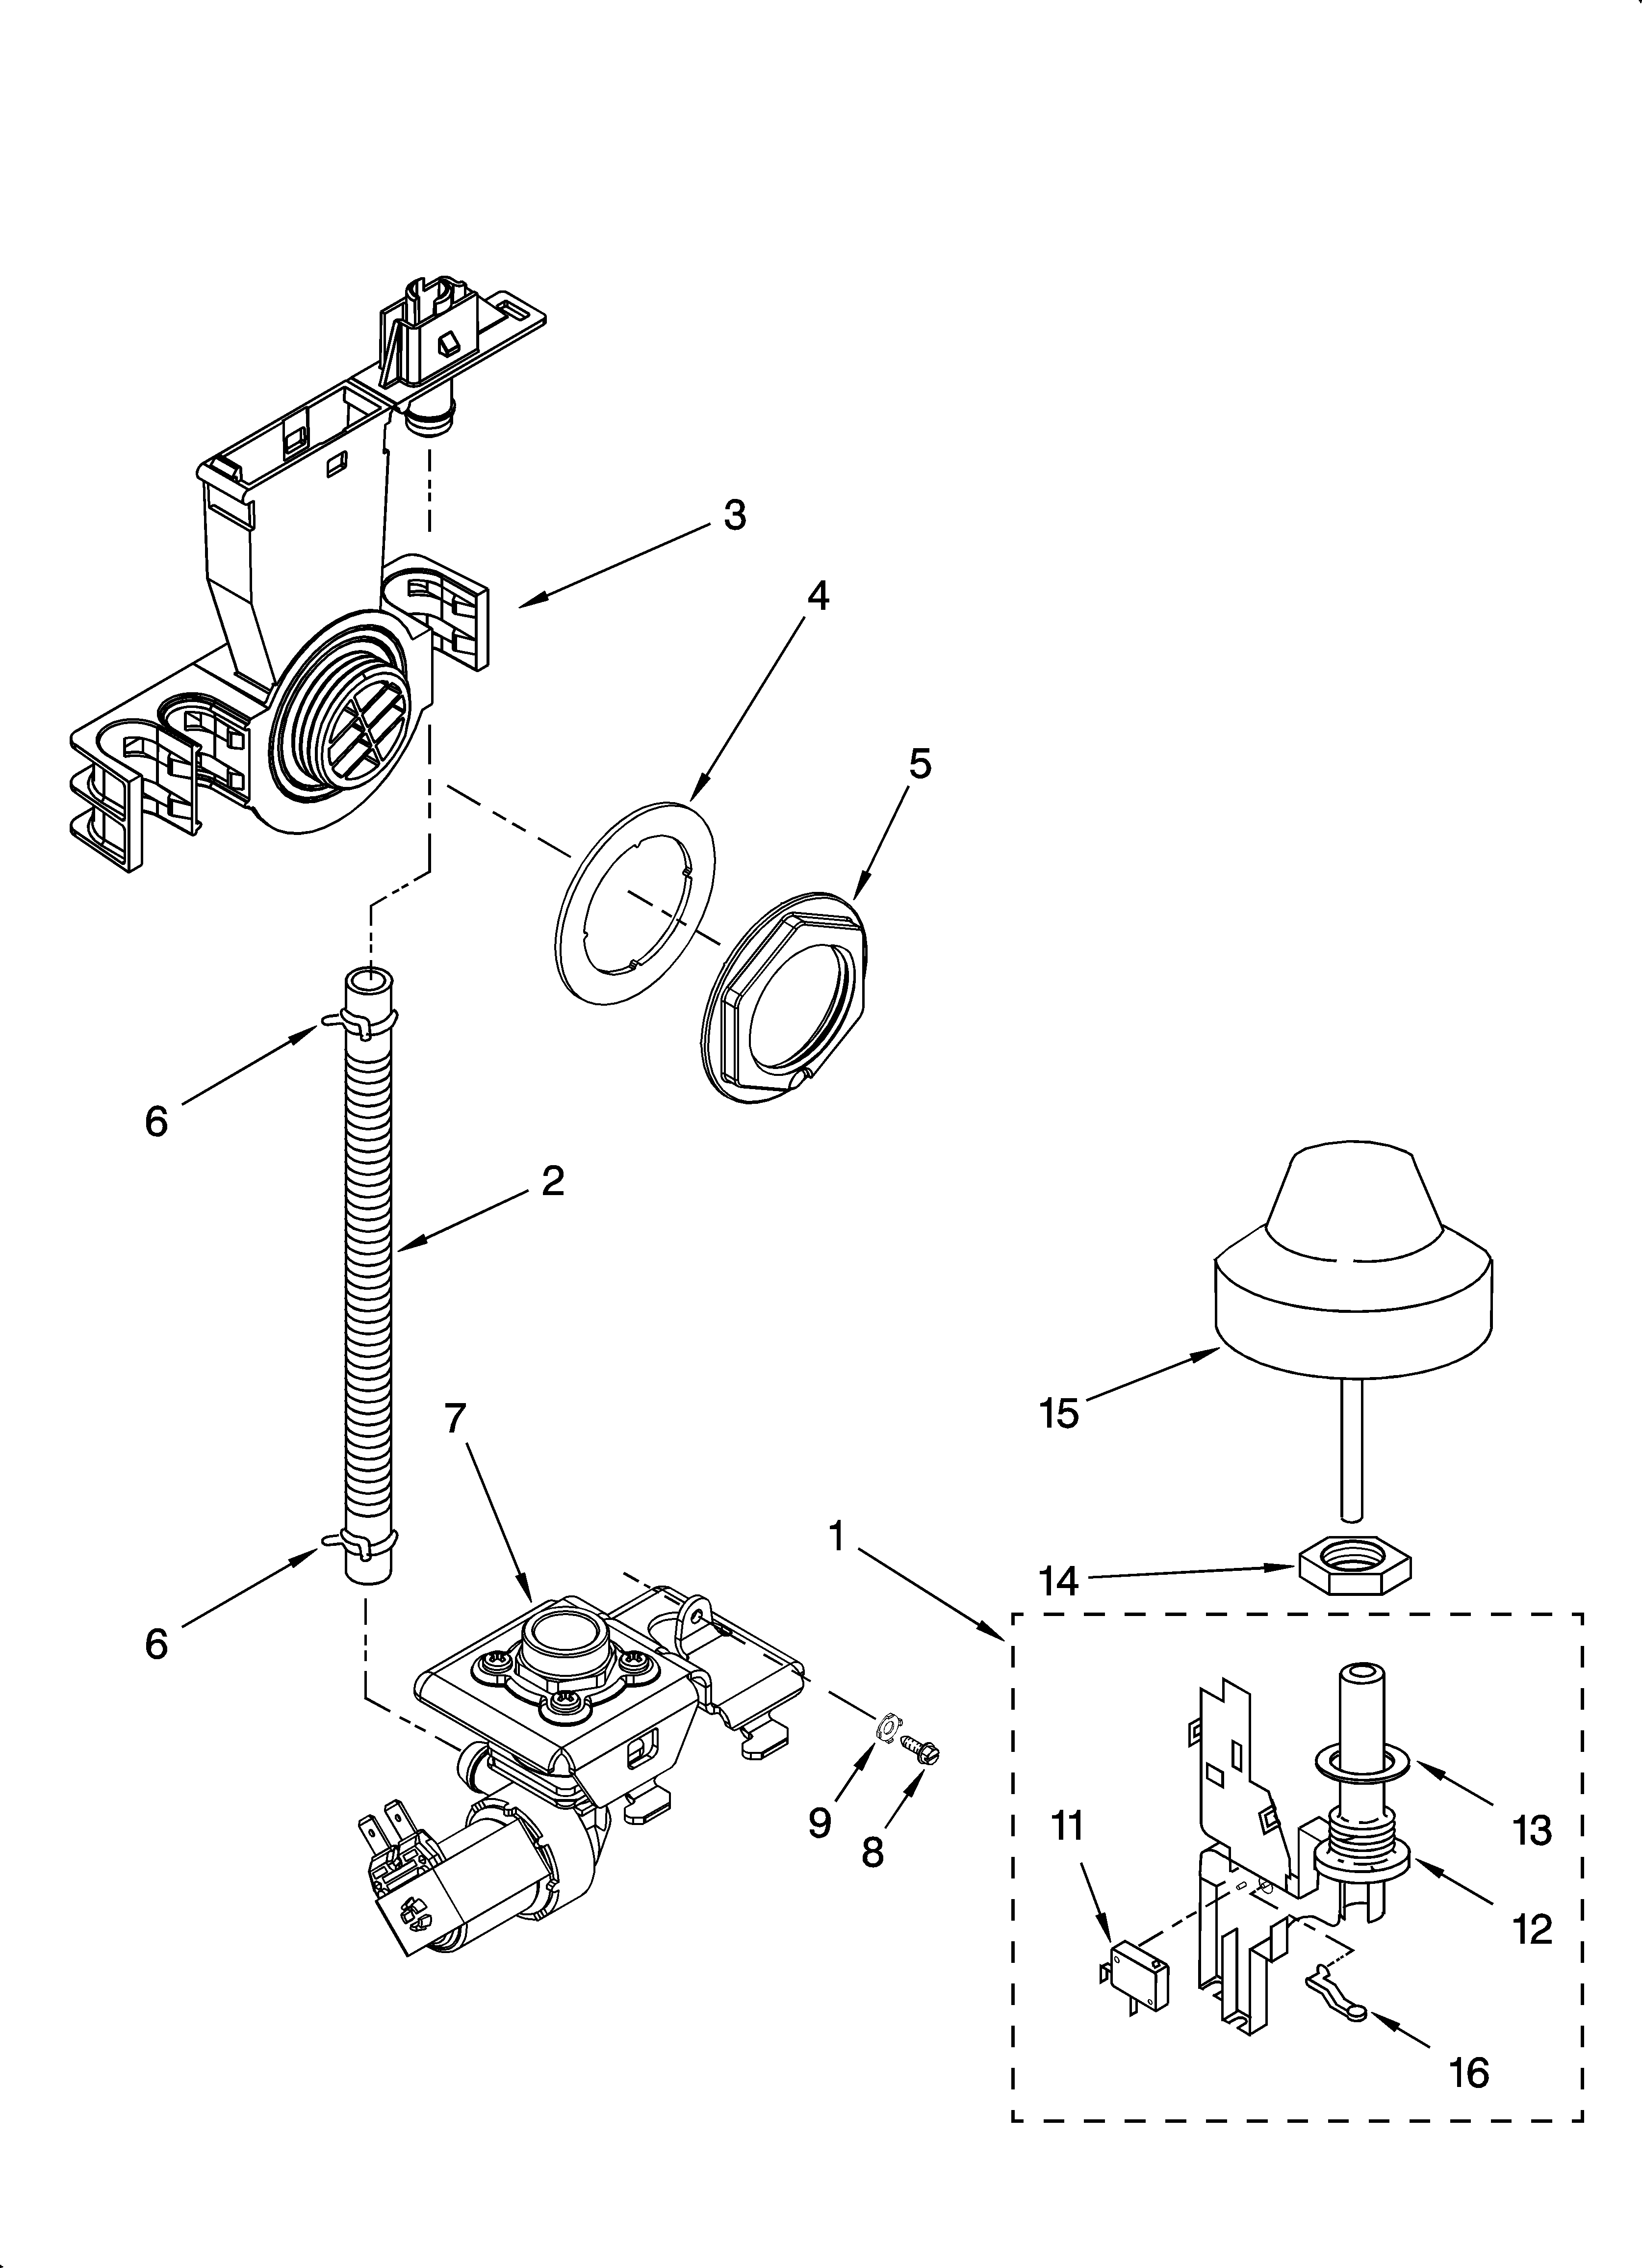 KitchenAid KUDS01DLWH2 fill and overfill parts diagram